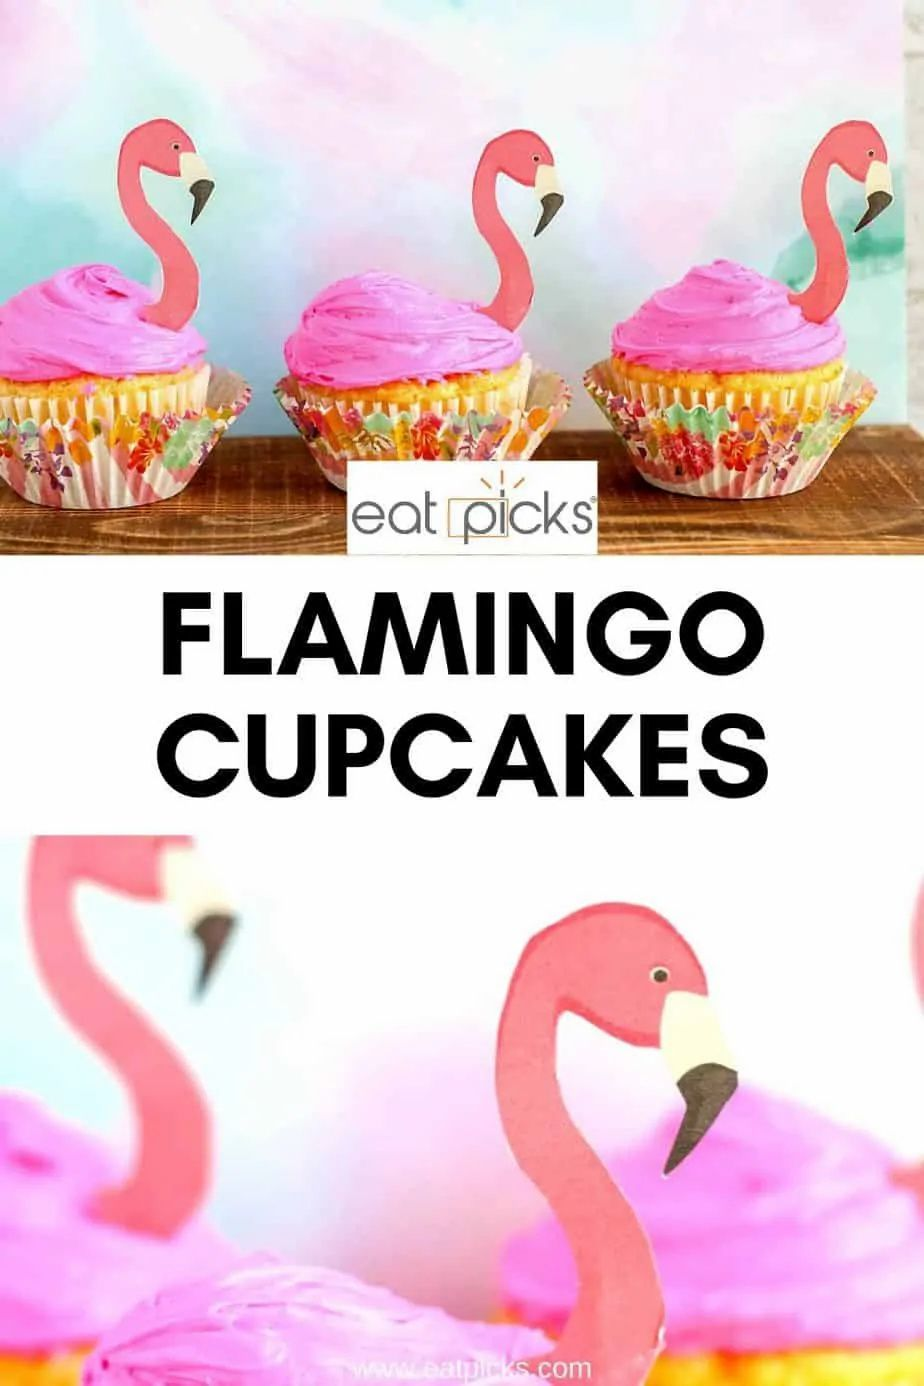 Flamingo cupcakes are a perfect dessert to serve for a summer birthday or pool party! Pink flamingo cupcake toppers make these a fun treat to enjoy! #flamingocupcakes #flamingo #themecakes #cupcakes #dessert #summerrecipes #partyfood #Themecupcakes #flamingoparty #poolpartyfood #easyrecipe